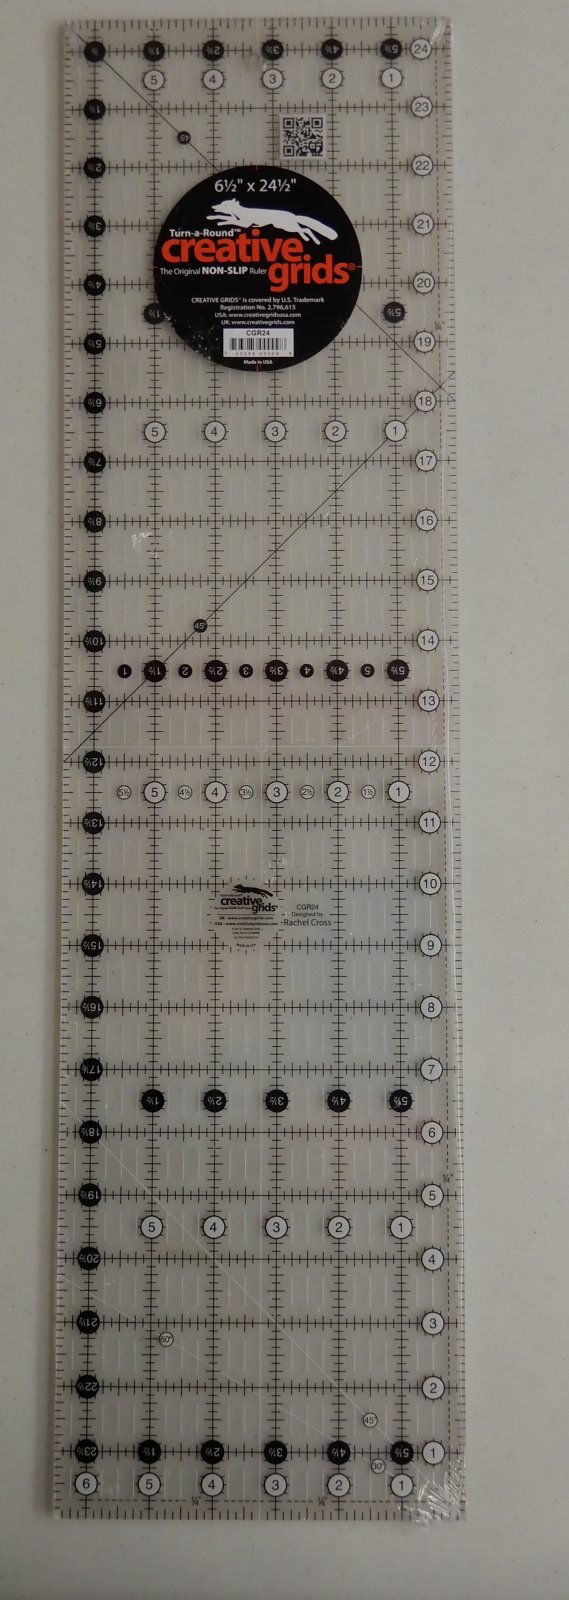 Creative Grids 61/2 X 24 1/2  Turn-a-Round Ruler